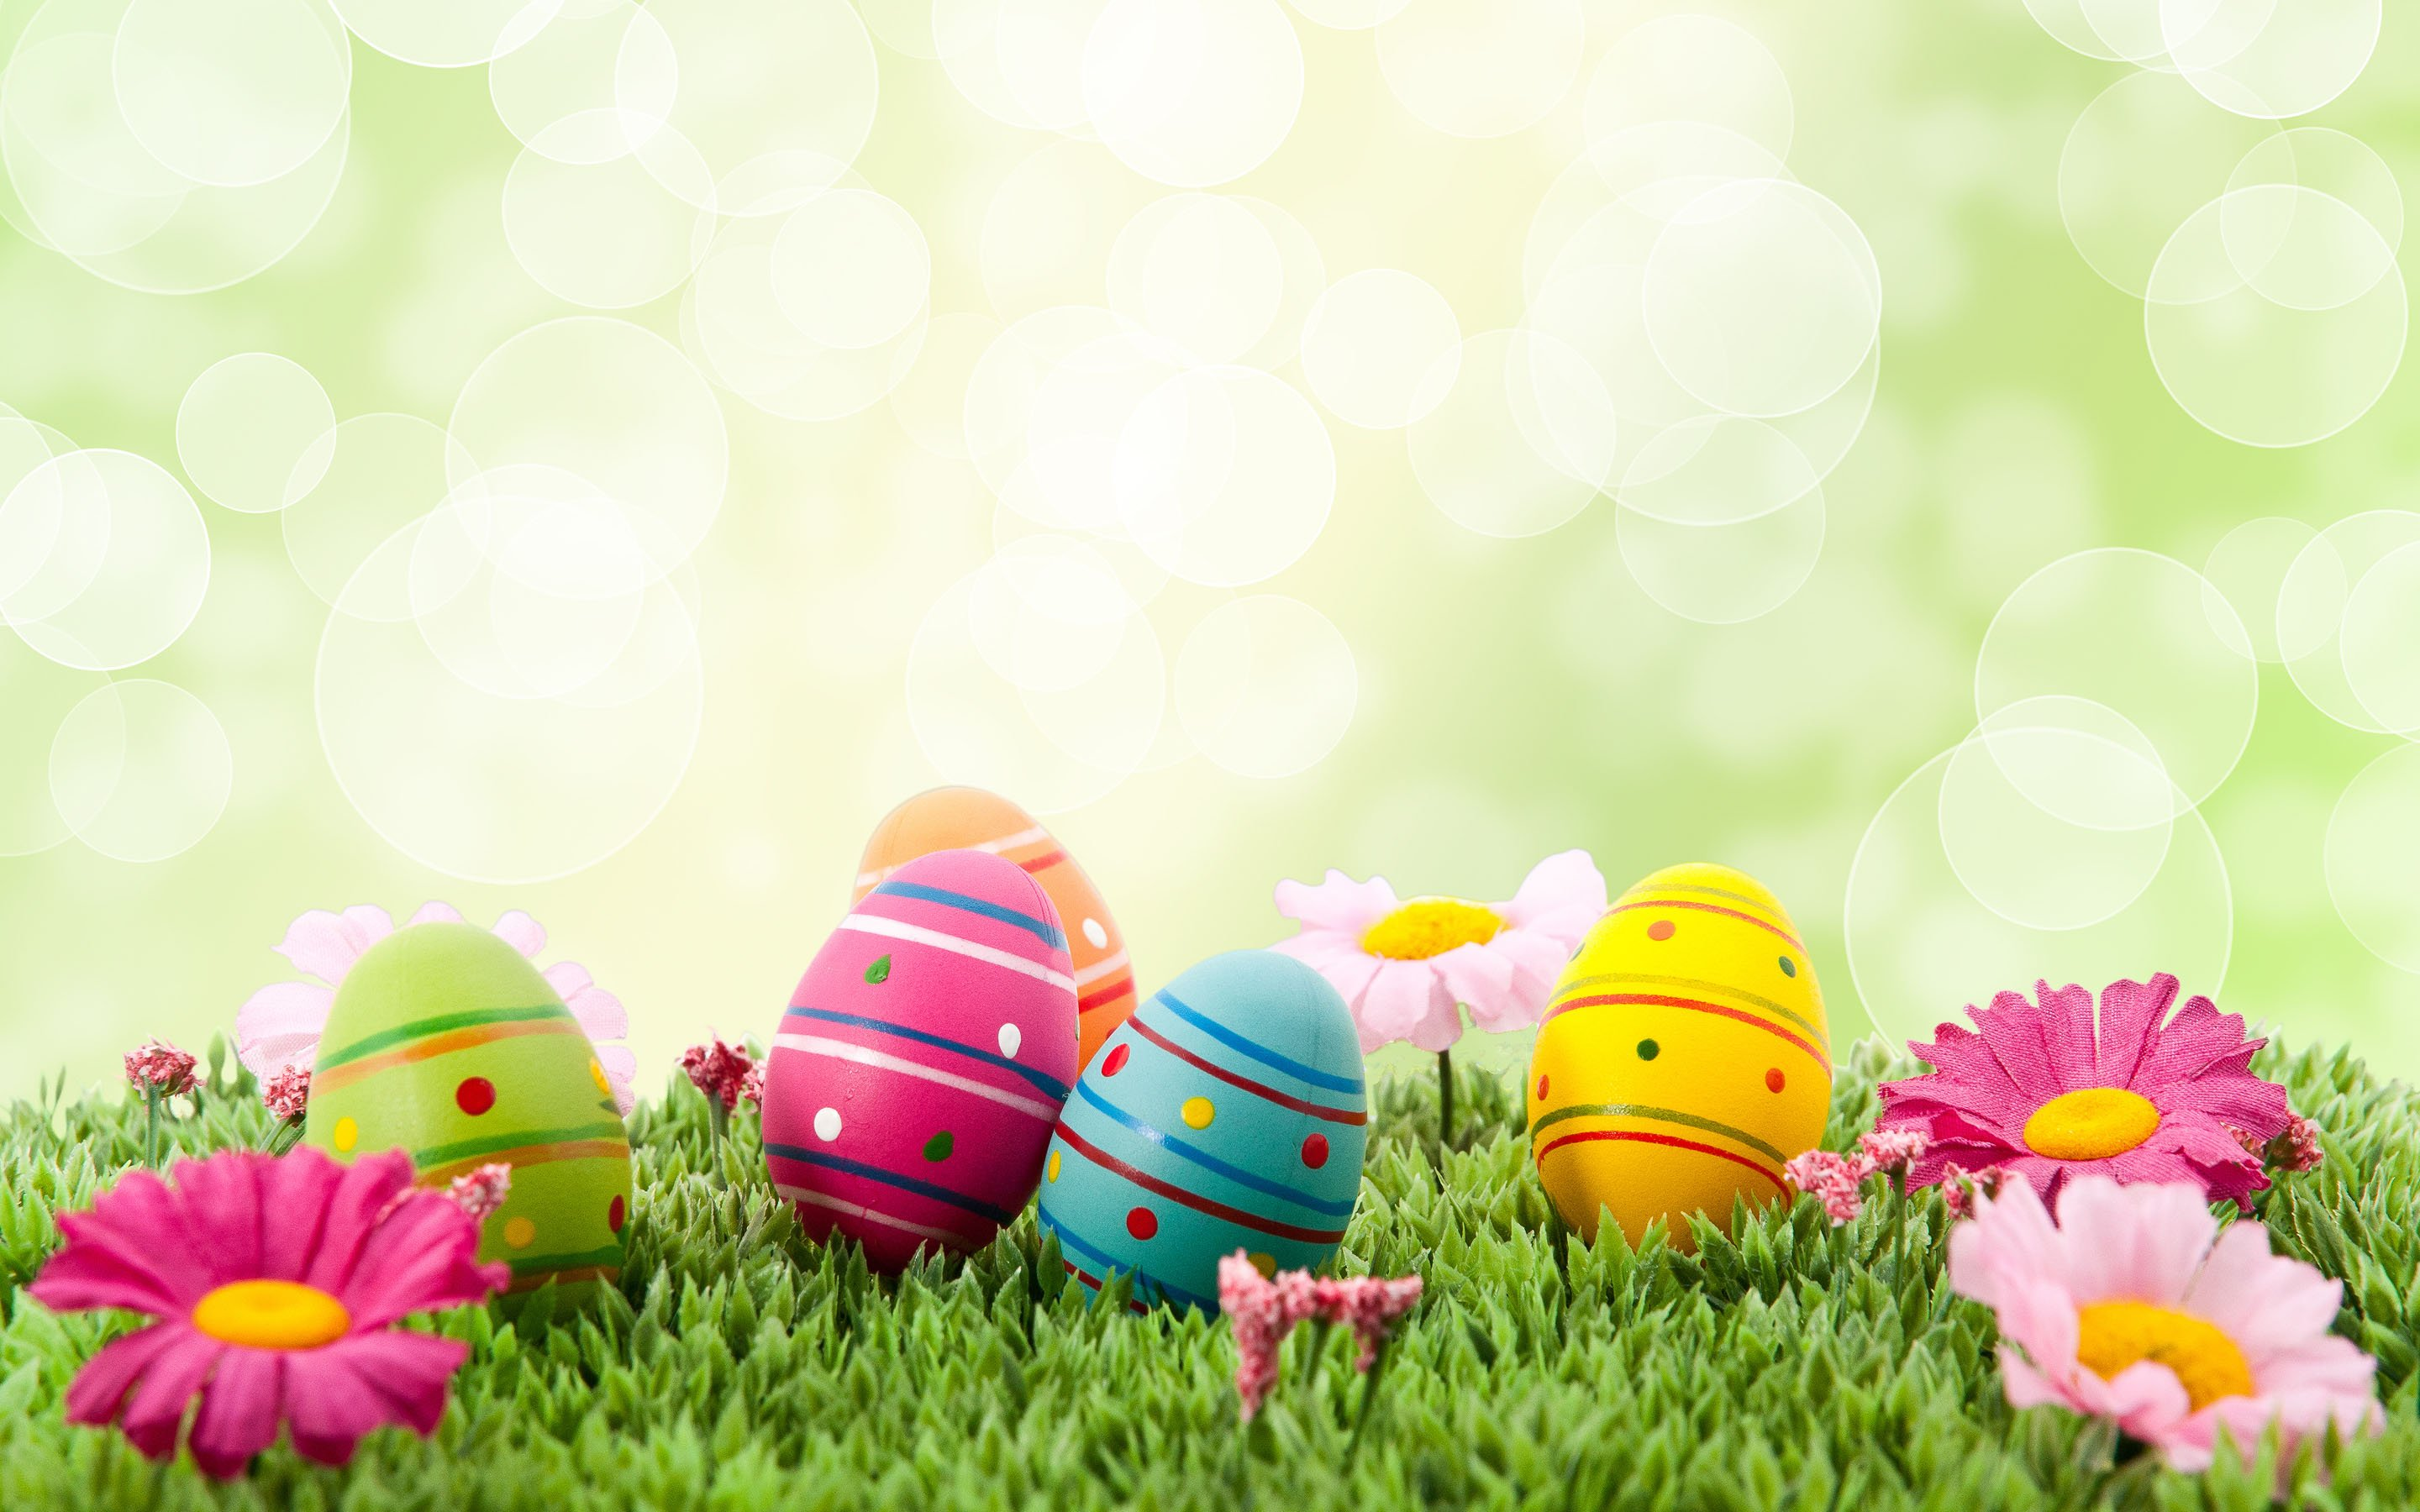 Happy Easter 2017 Wallpapers Background Images 2880x1800